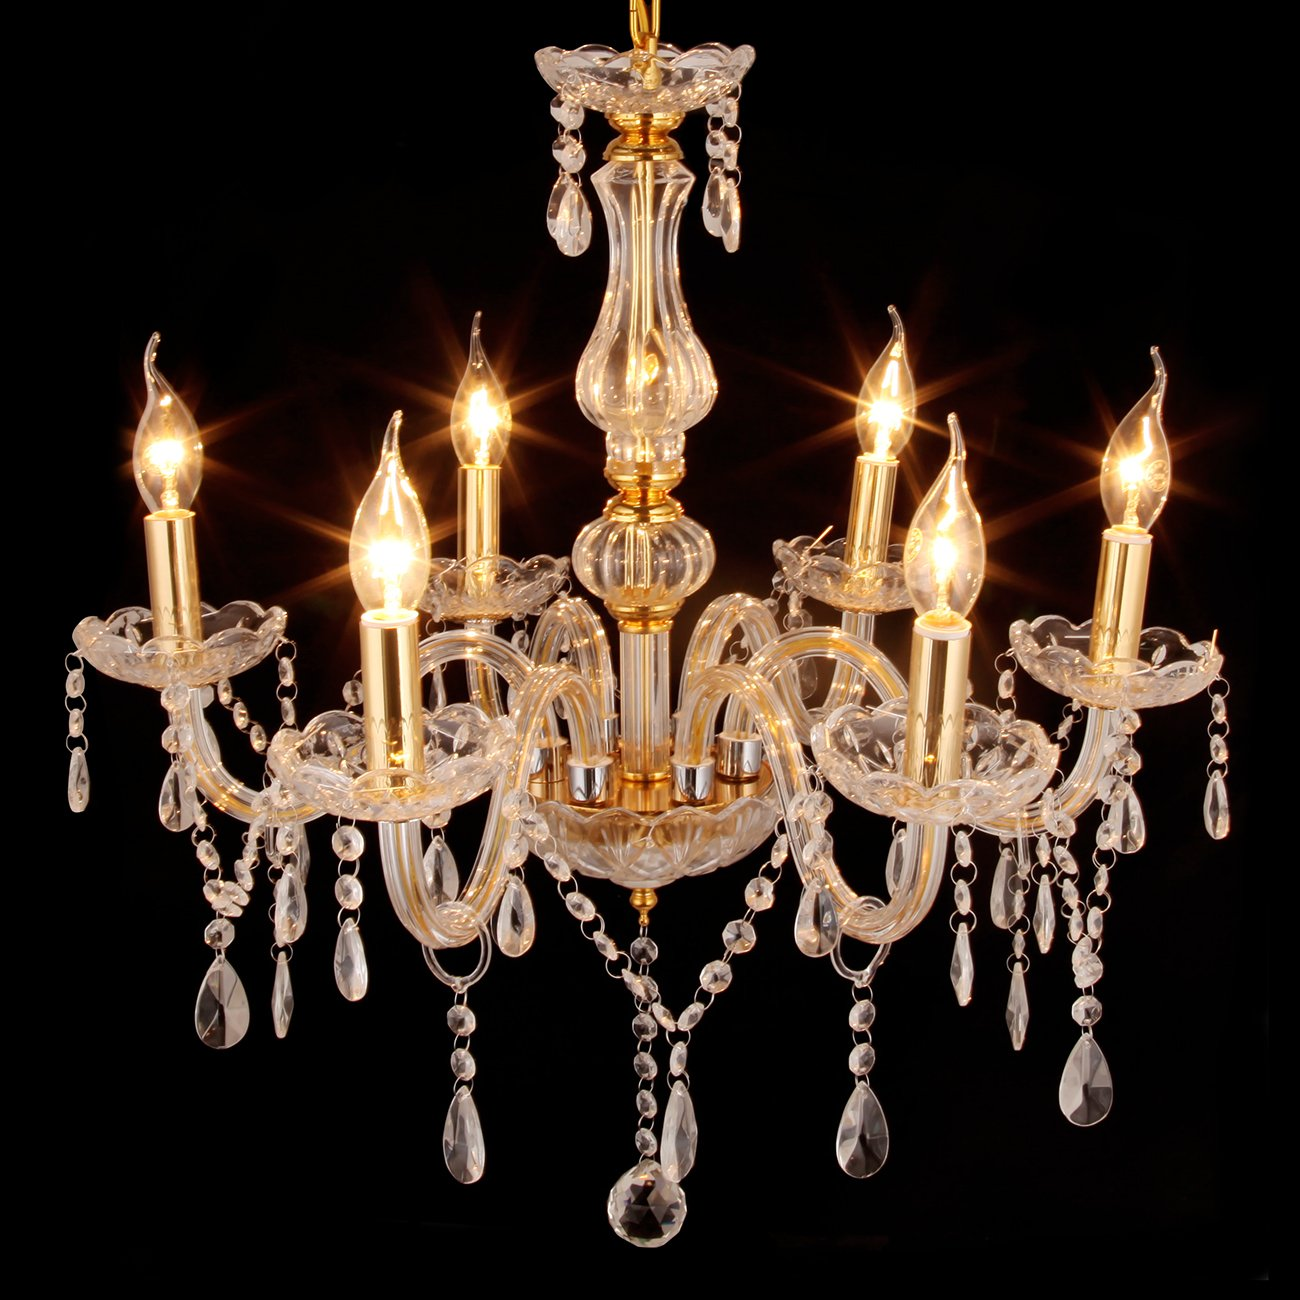 Ridgeyard 6 Lights Crystal Chandelier Modern 6 Arms Candle Chandeliers Living Room Lighting Ceiling Fixture Pendant Lamp H23.6'' x W23.6'' (Gold)